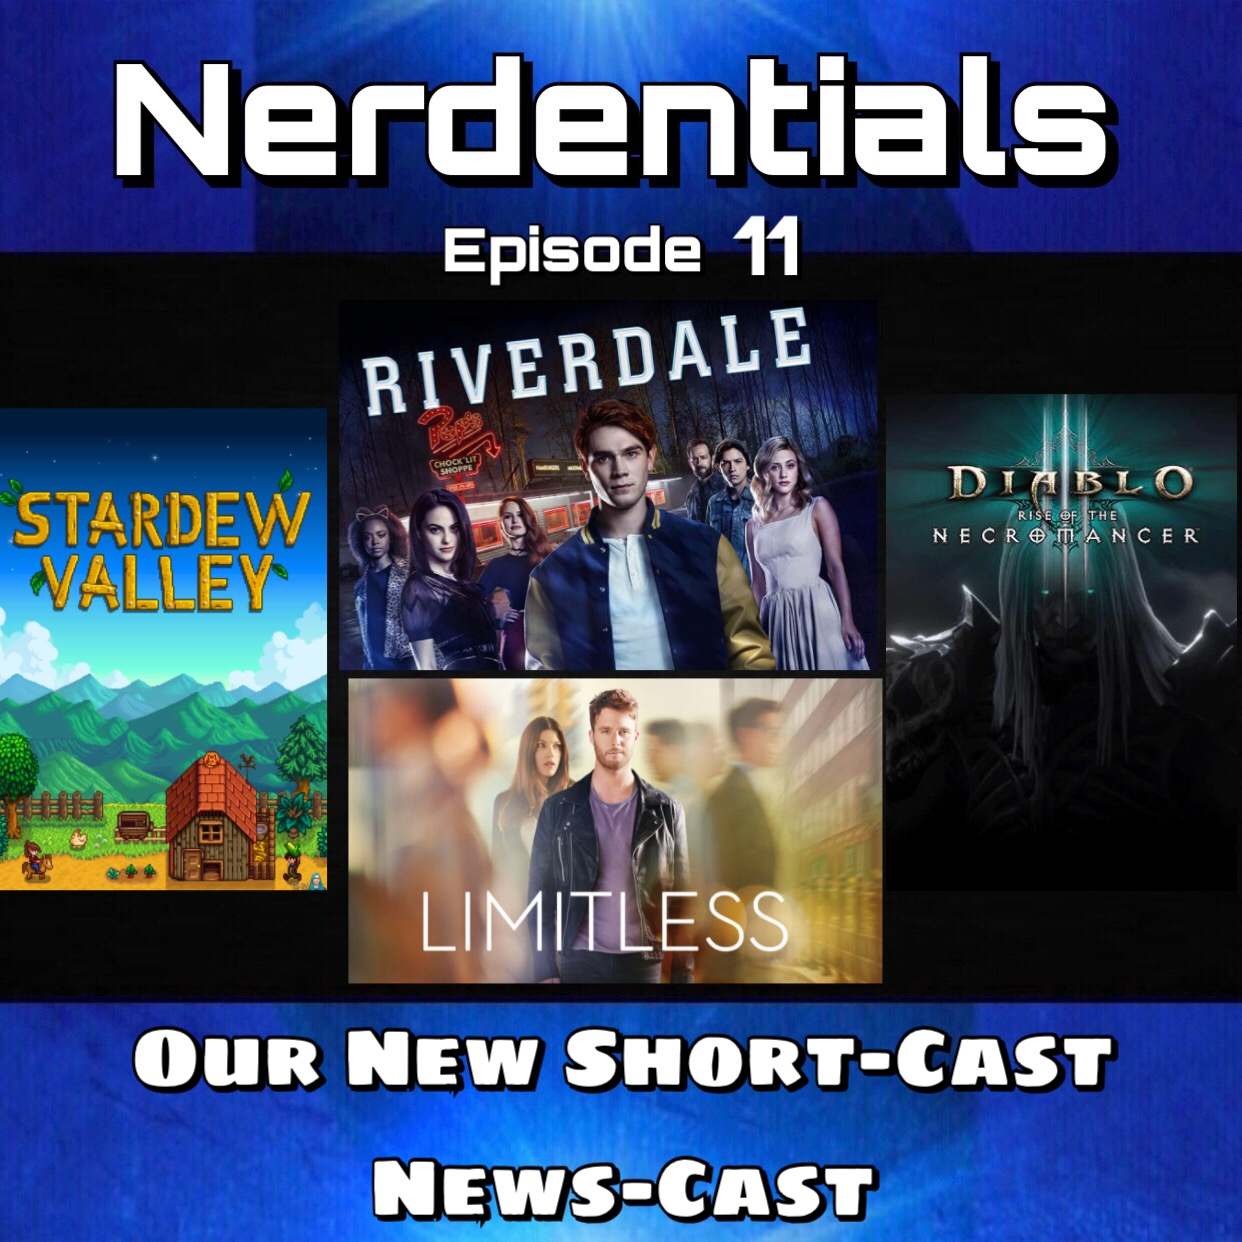 - First up this week the boys talk over the various video games we've been in...such as Diablo 3 and it's new DLC the Necromancer! Destiny shenanigans....Some Stardew Valley from Mr Barry and some classic hits from Sir Nicholas like, Legend of Dragoon!Then in TV Talk Matt gushes over his binge watching of Riverdale and Travelers and Joe hit the Film to Tv adaptation of Limitless. Sit back and enjoy this round of Nerdy Conversation!